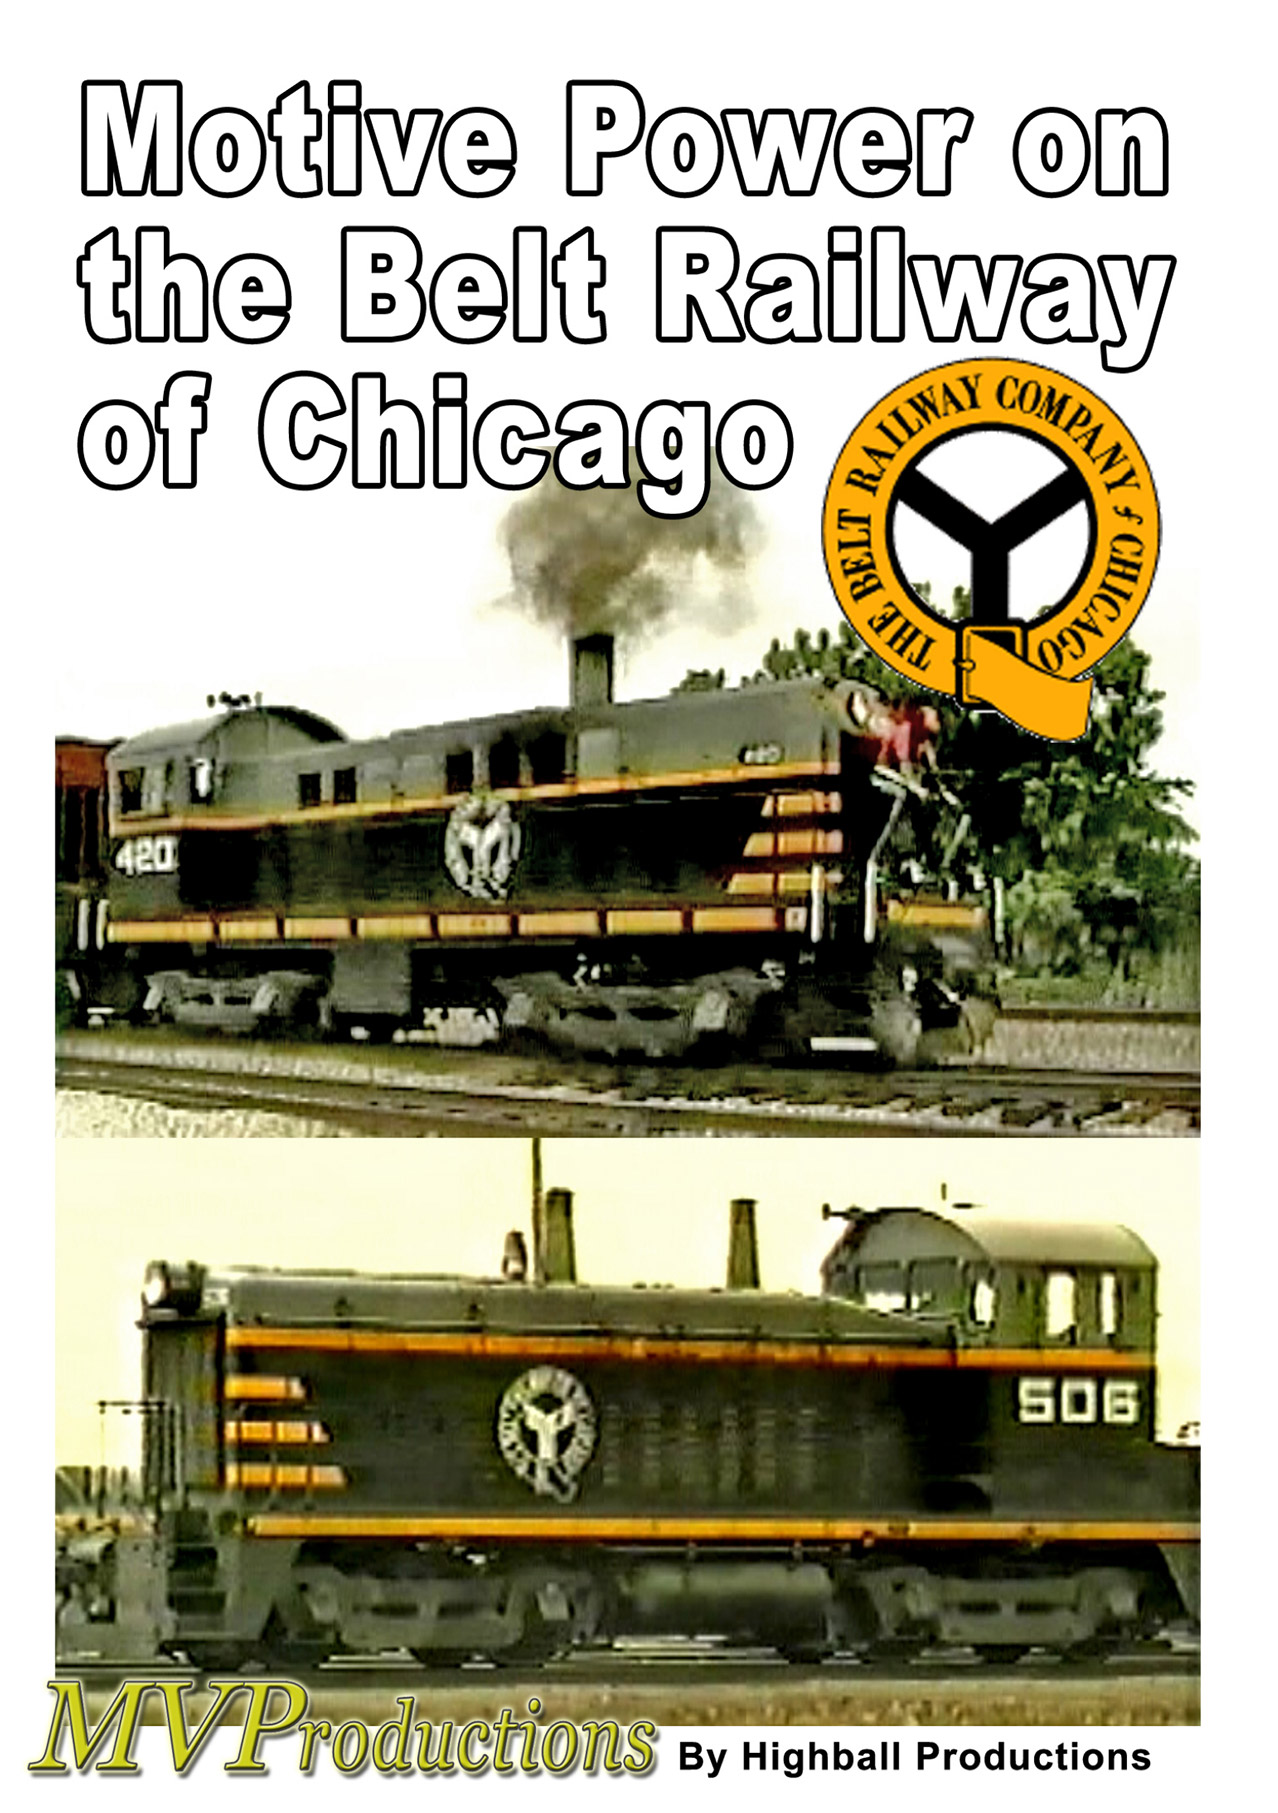 Motive Power on the Belt Railway of Chicago Train Video Midwest Video Productions MVMPBRC 601577880219